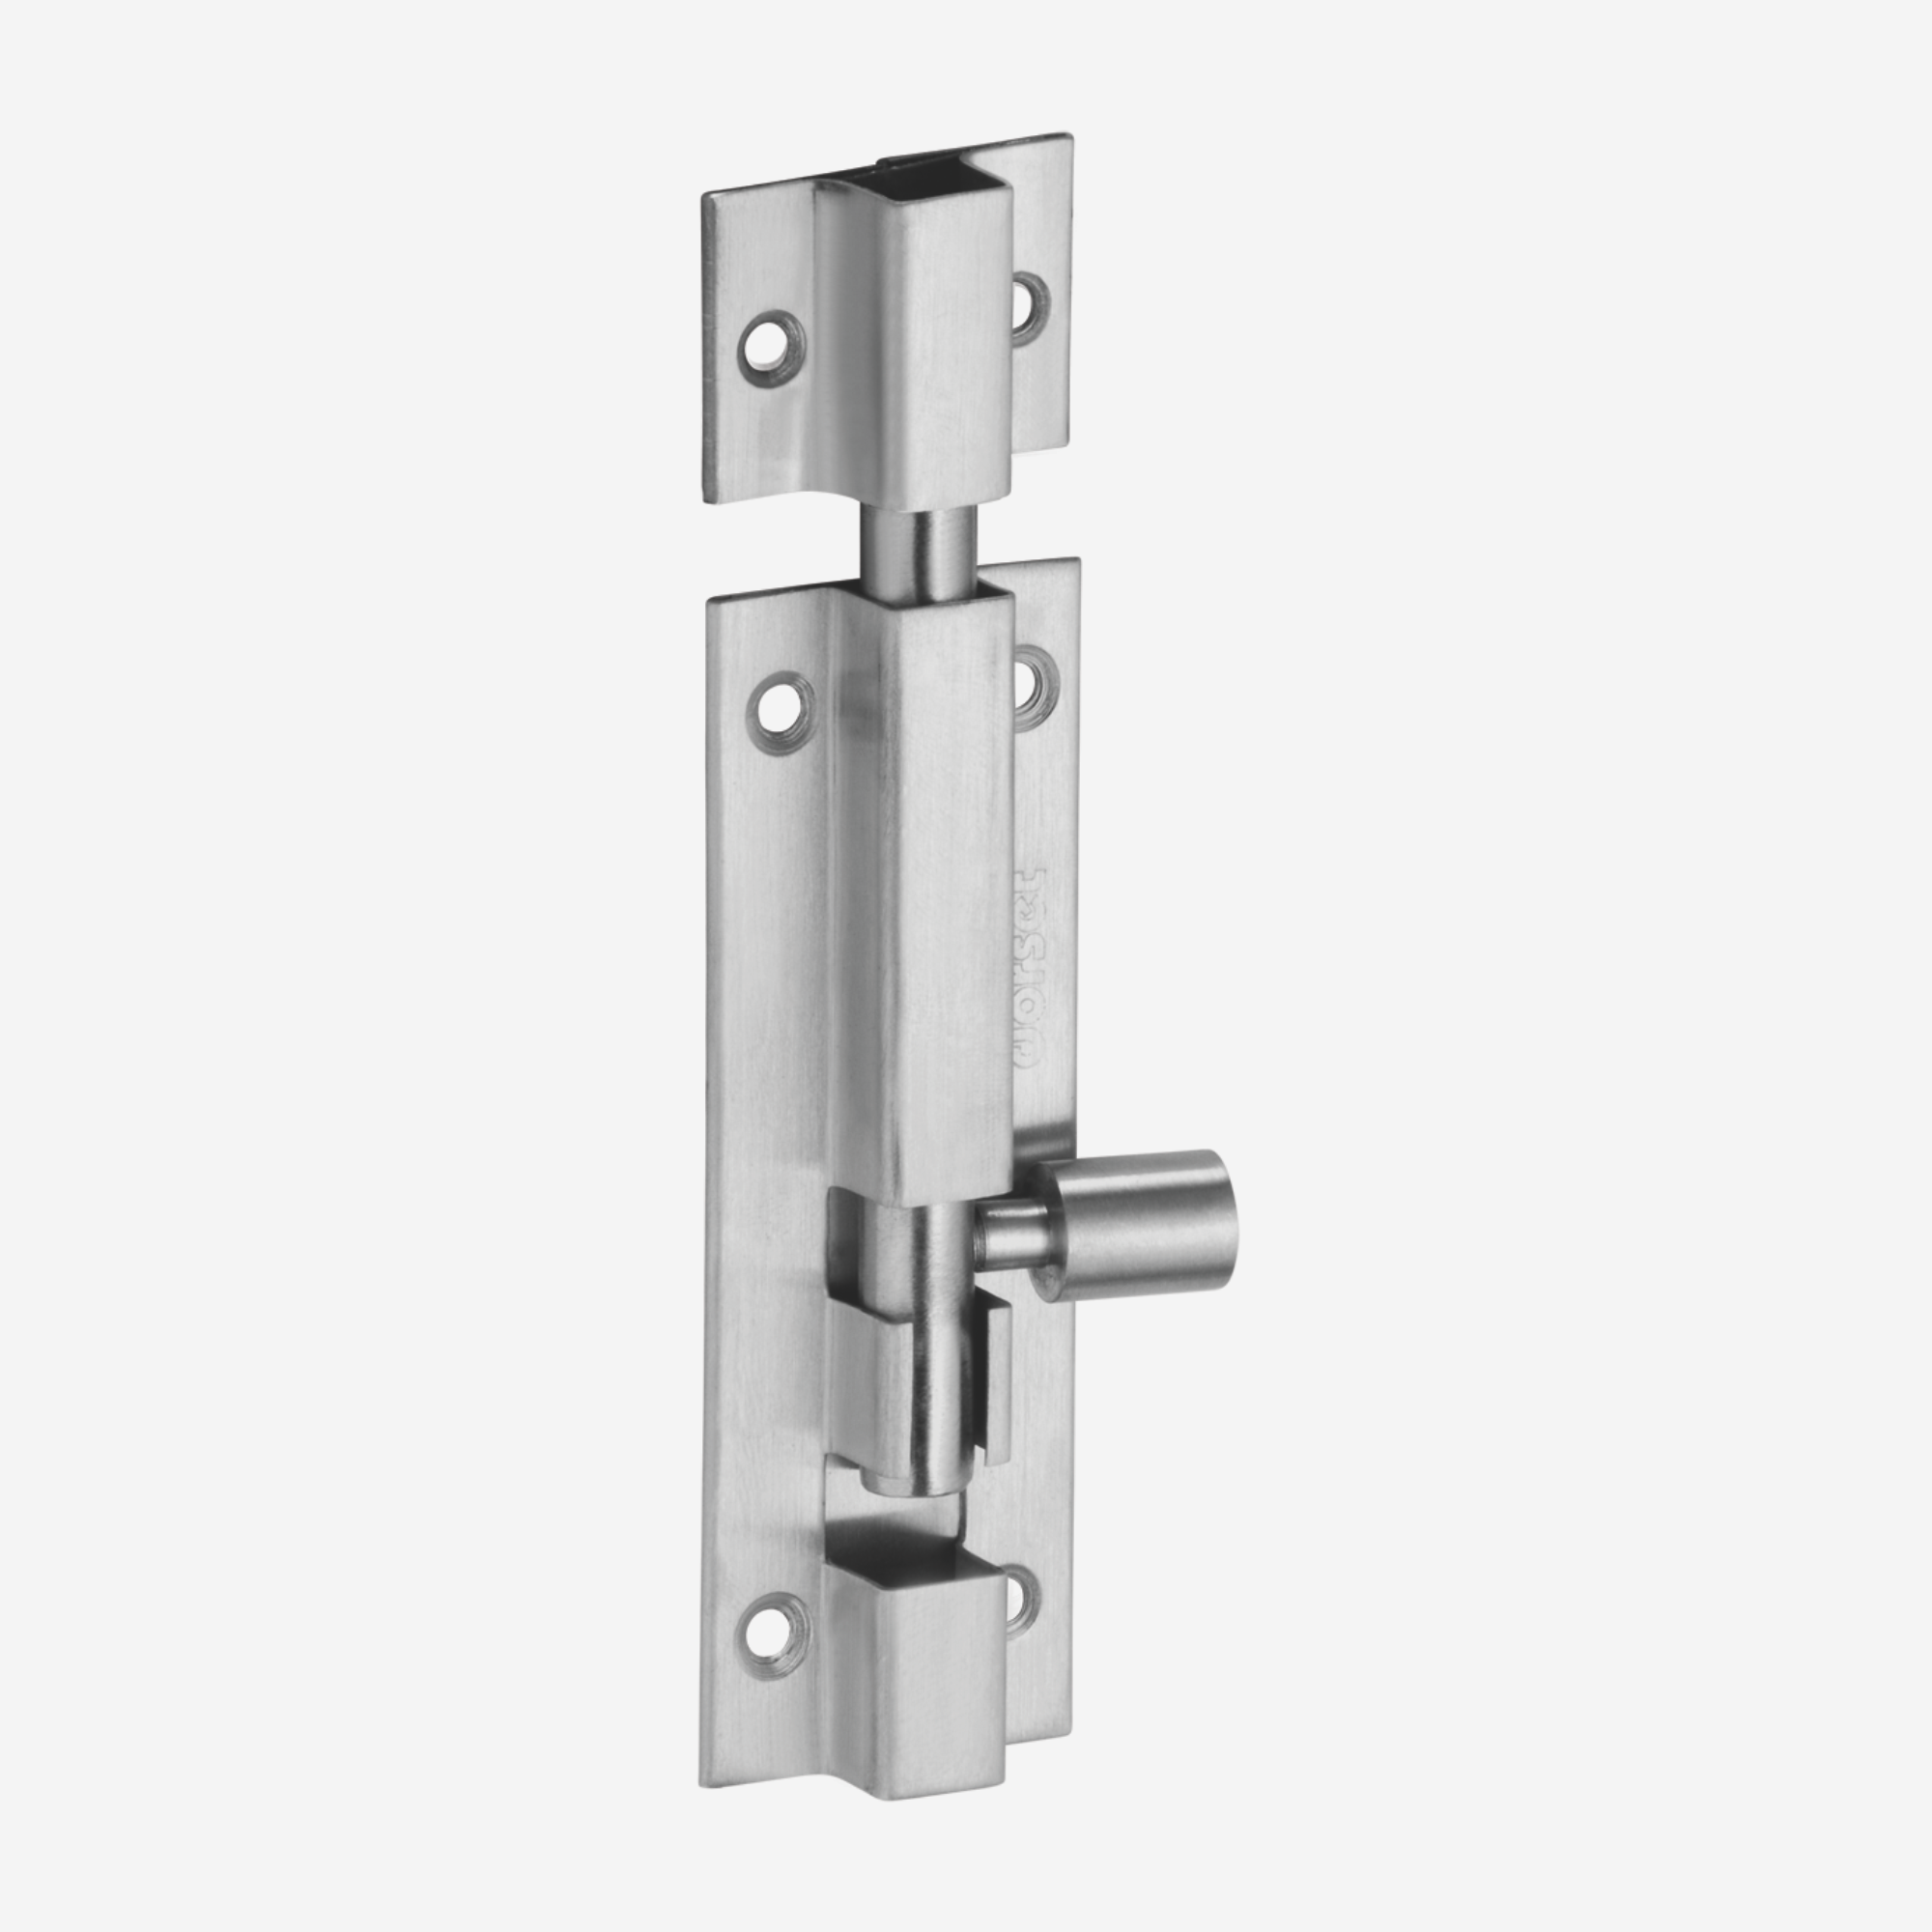 Dorset Stainless Steel Tower Bolts - 06inch or 150mm - TS 610